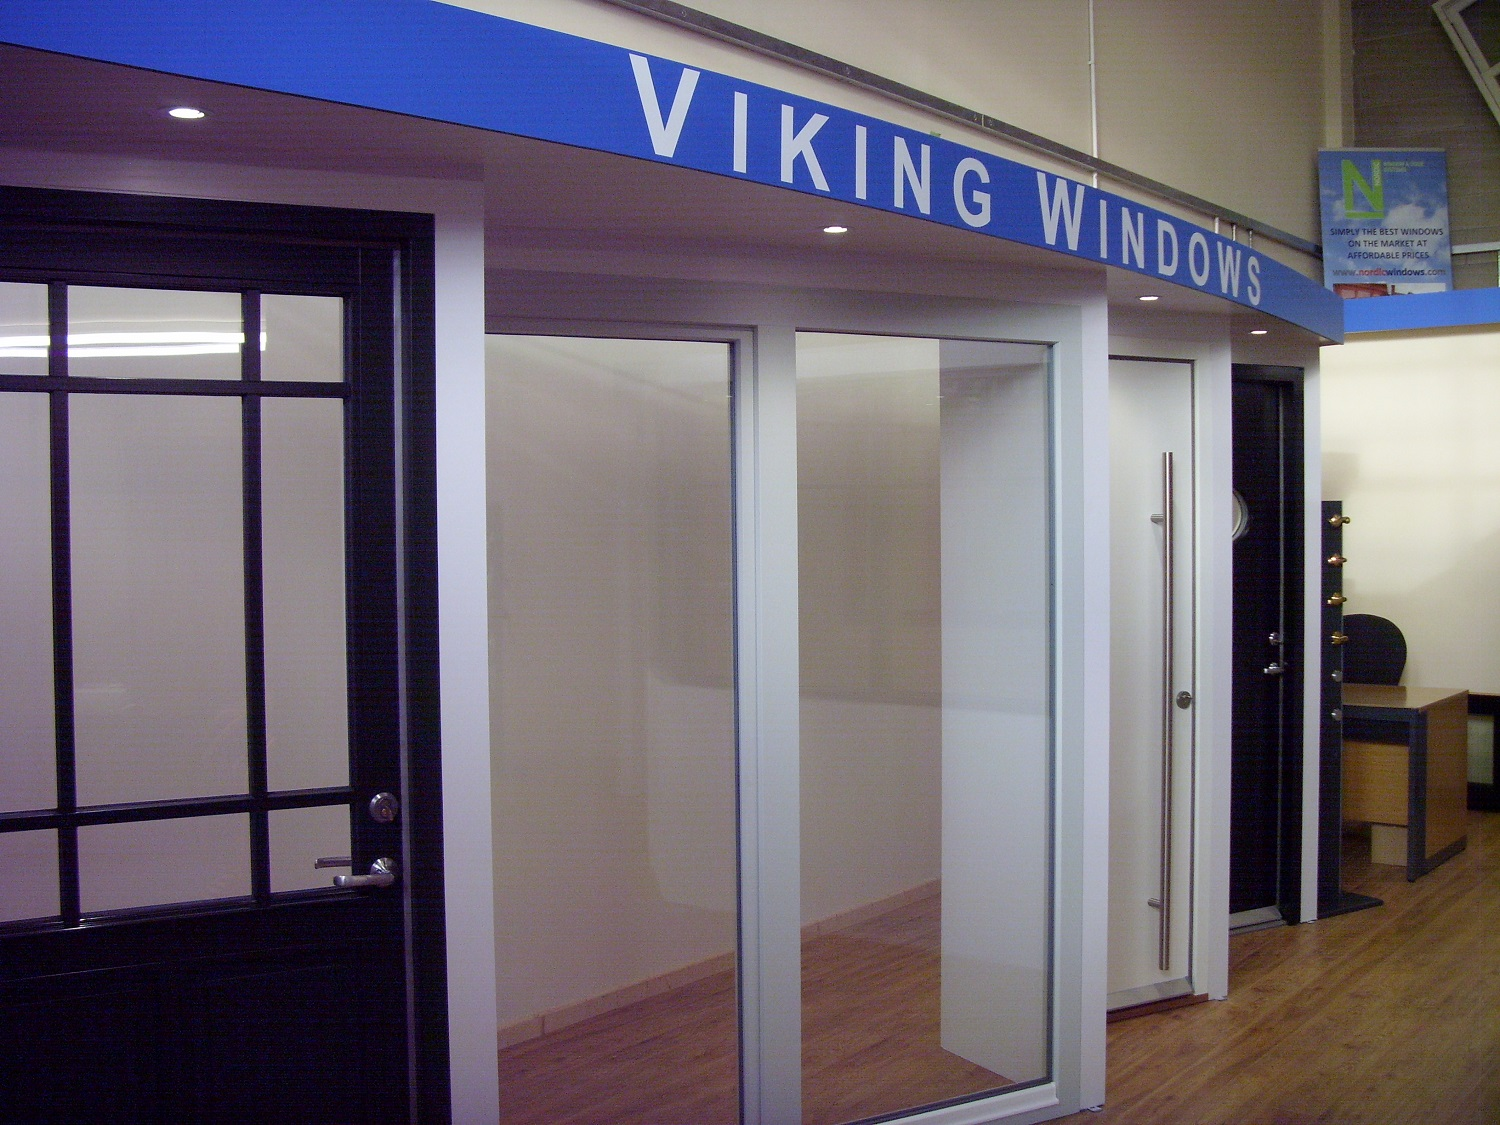 Viking Windows Northern Ireland Nordic Windows and Doors Northern Ireland. ST831517 & Viking Windows supplied in Northern Ireland with Nordic Window and ...